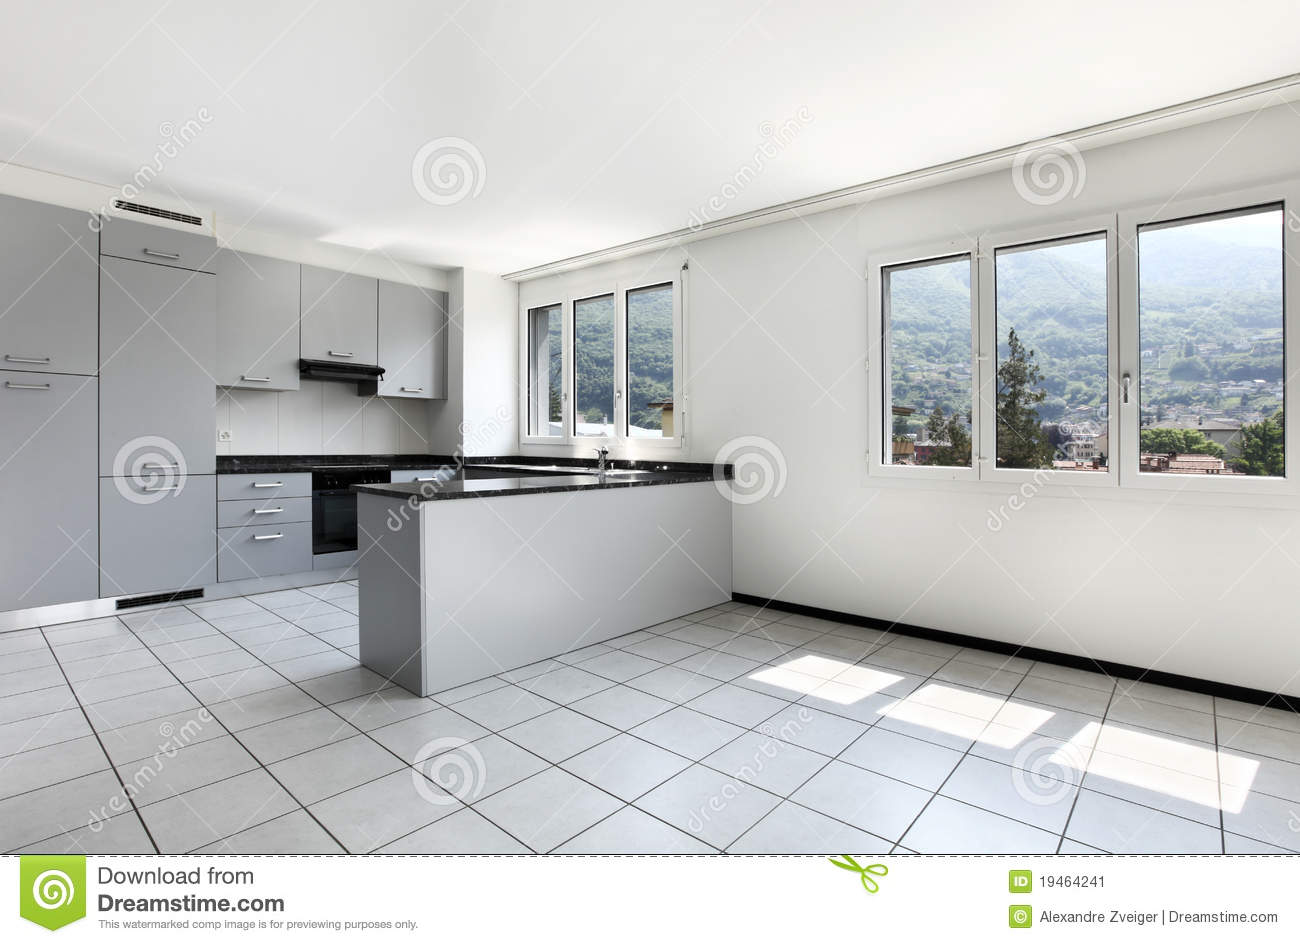 Appartement neuf cuisine vide image stock image 19464241 for Neuf appartement